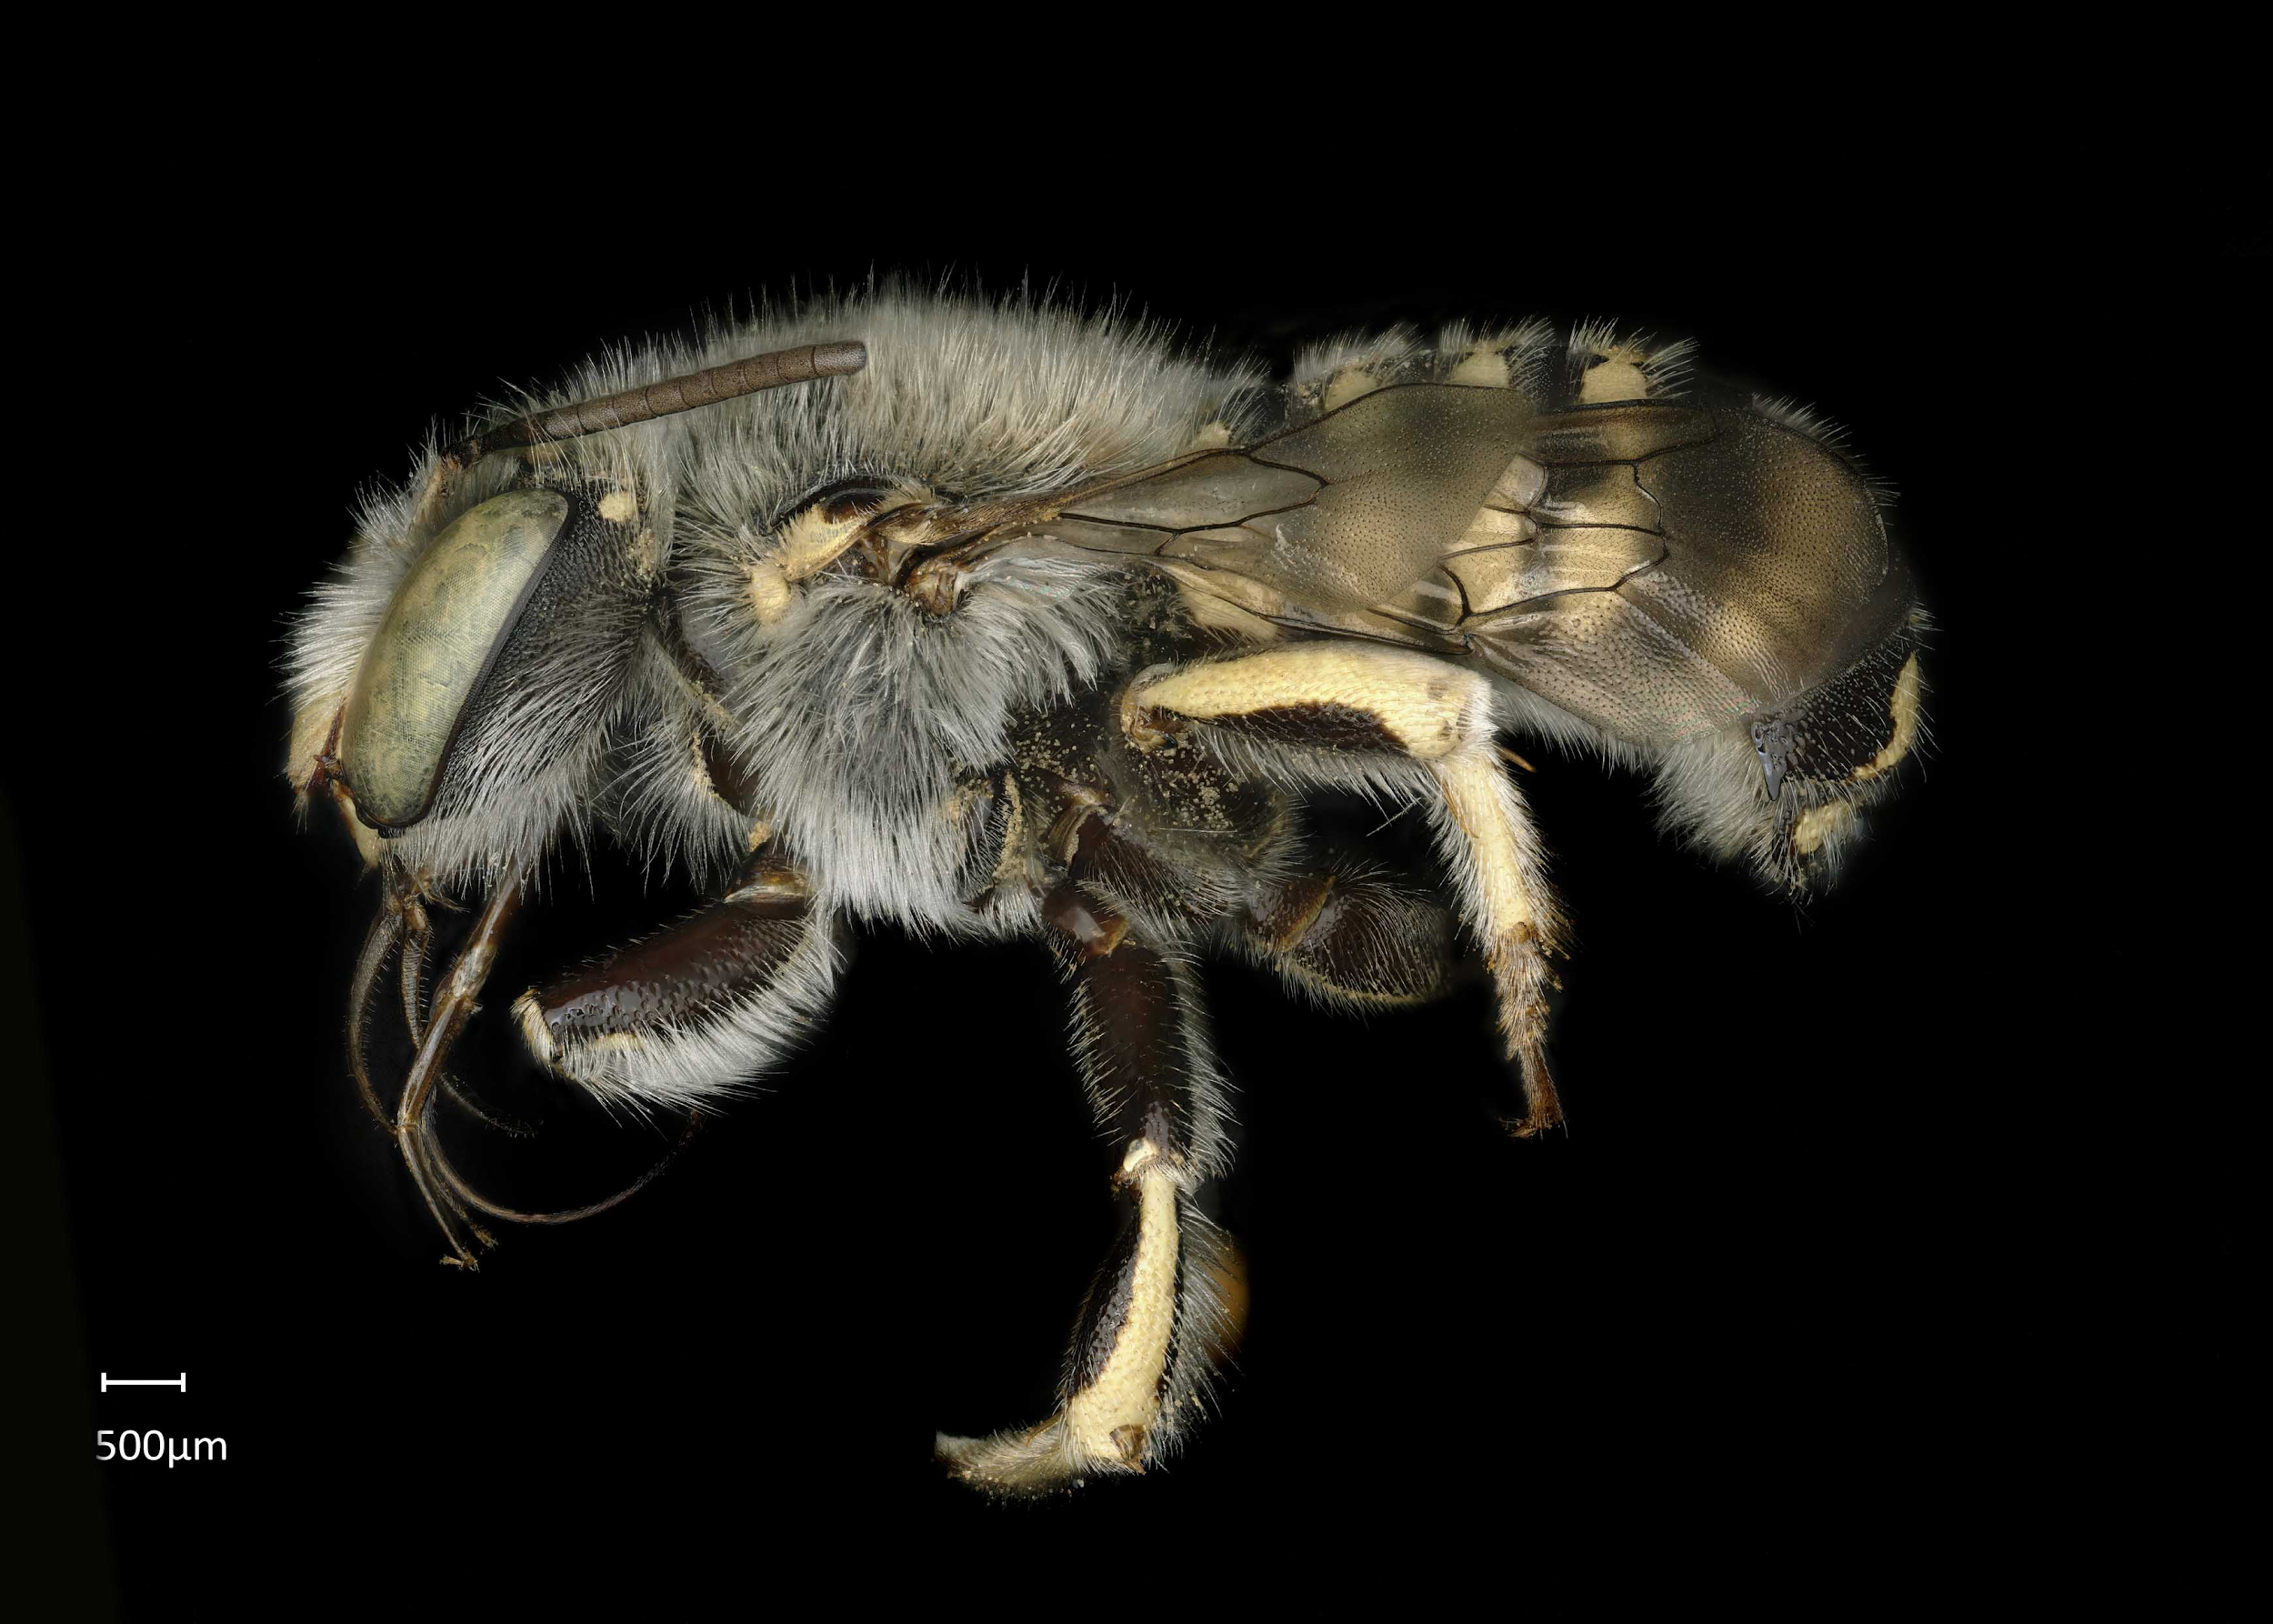 Wool carder bee Photo credi: Jeni Sidwell